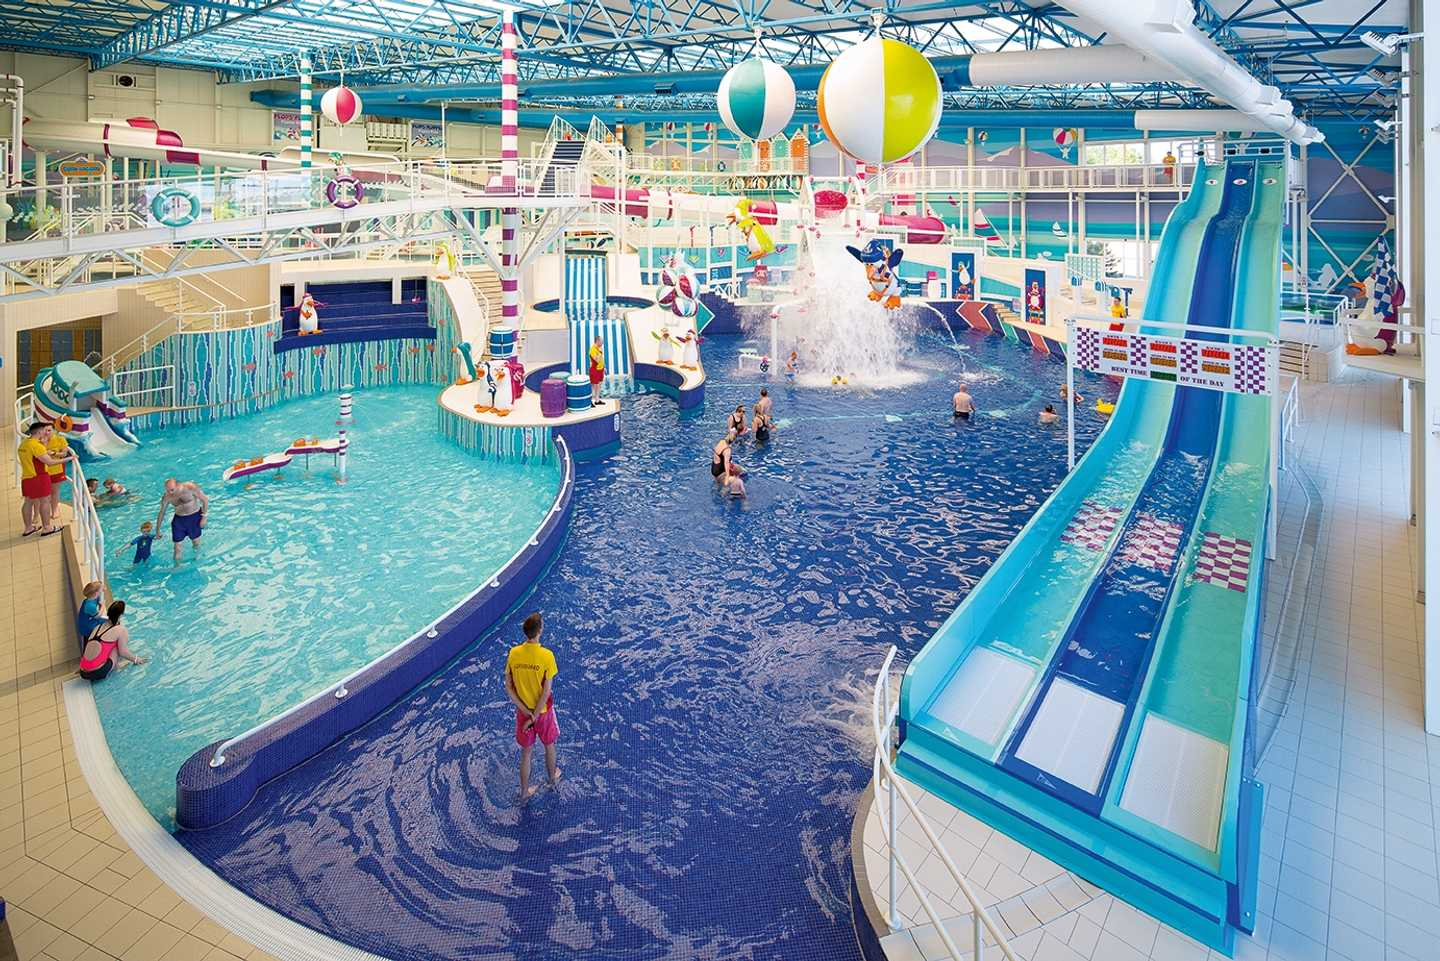 Guests splashing about in the heated indoor pool featuring slides and toddler zone